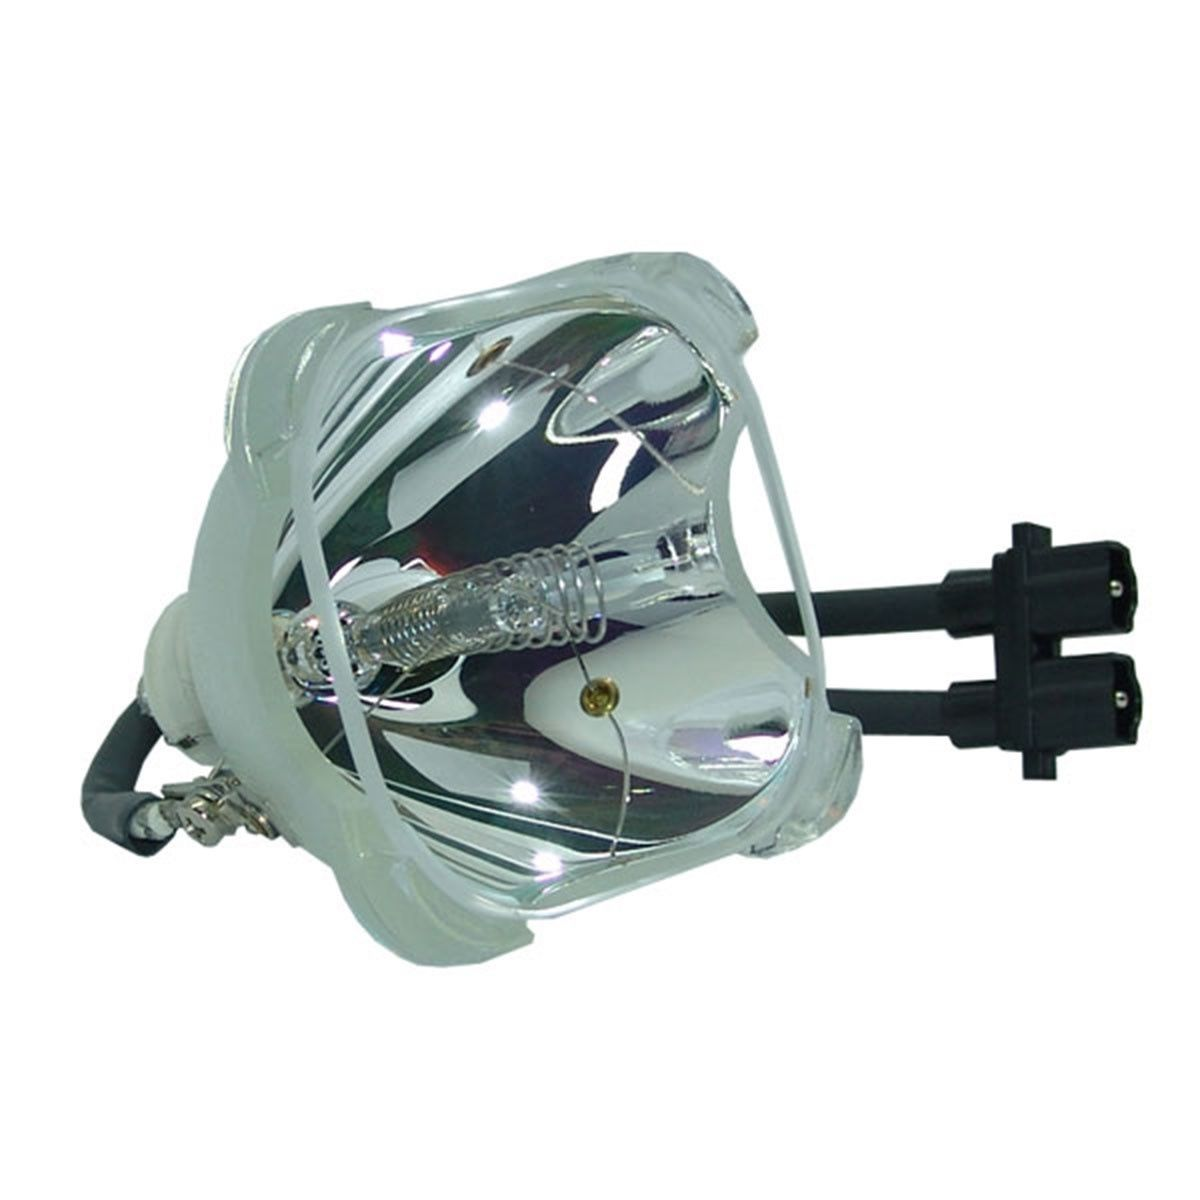 Compatible Bare Bulb 03-000648-01P for CHRISTIE LX20 Projector Lamp Bulb without housing compatible bare bulb 03 000881 01p for christie rd rnr lx66 vivid lx66 lx66a ls 58 projector lamp bulb without housing